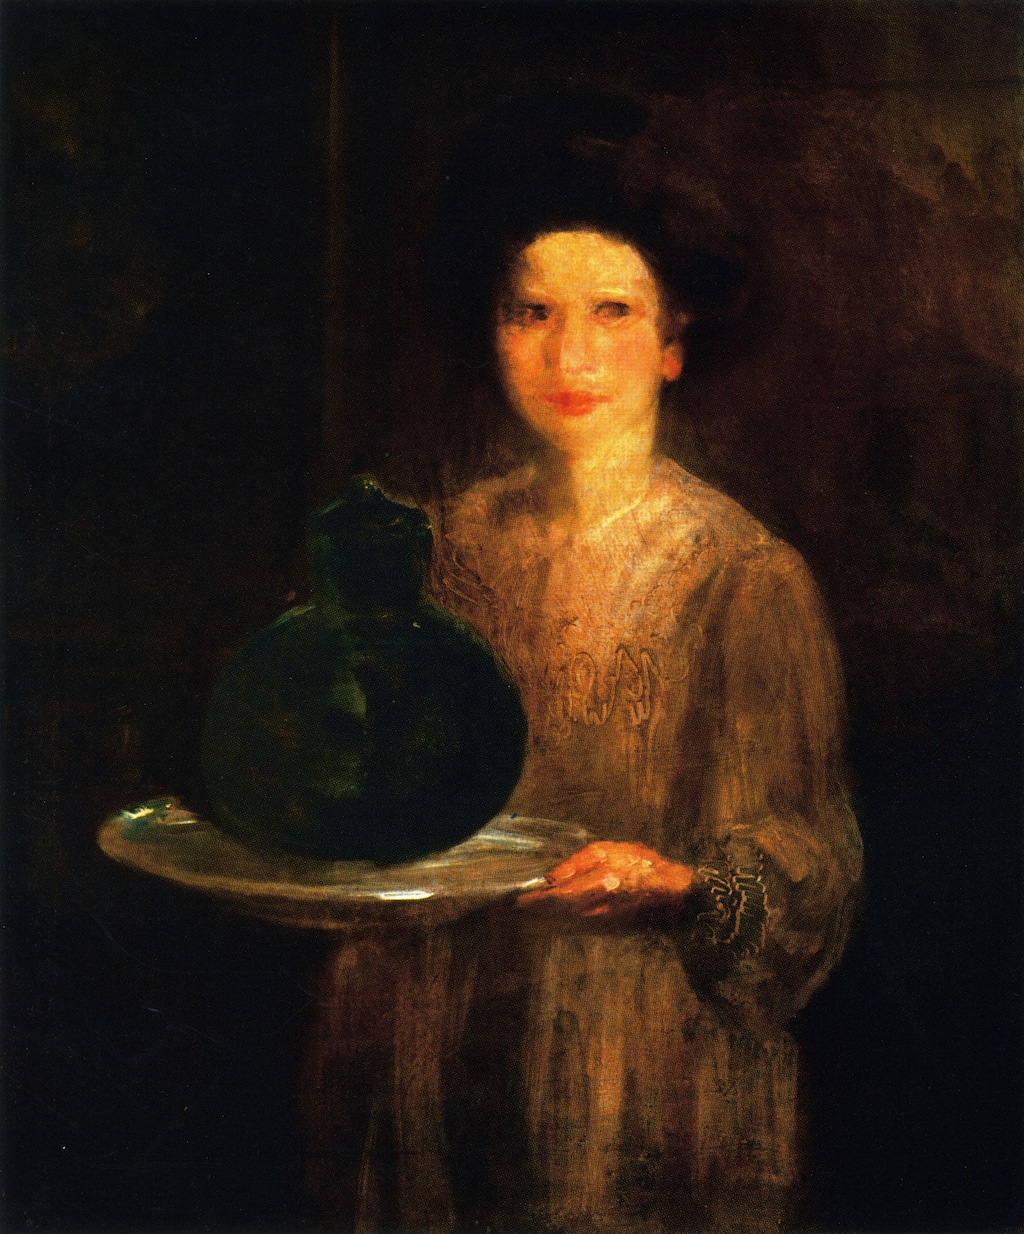 1905c-The-Pawnbrokers-Daughter-oil-on-canvas-64_1-x-76_2-cm.jpg